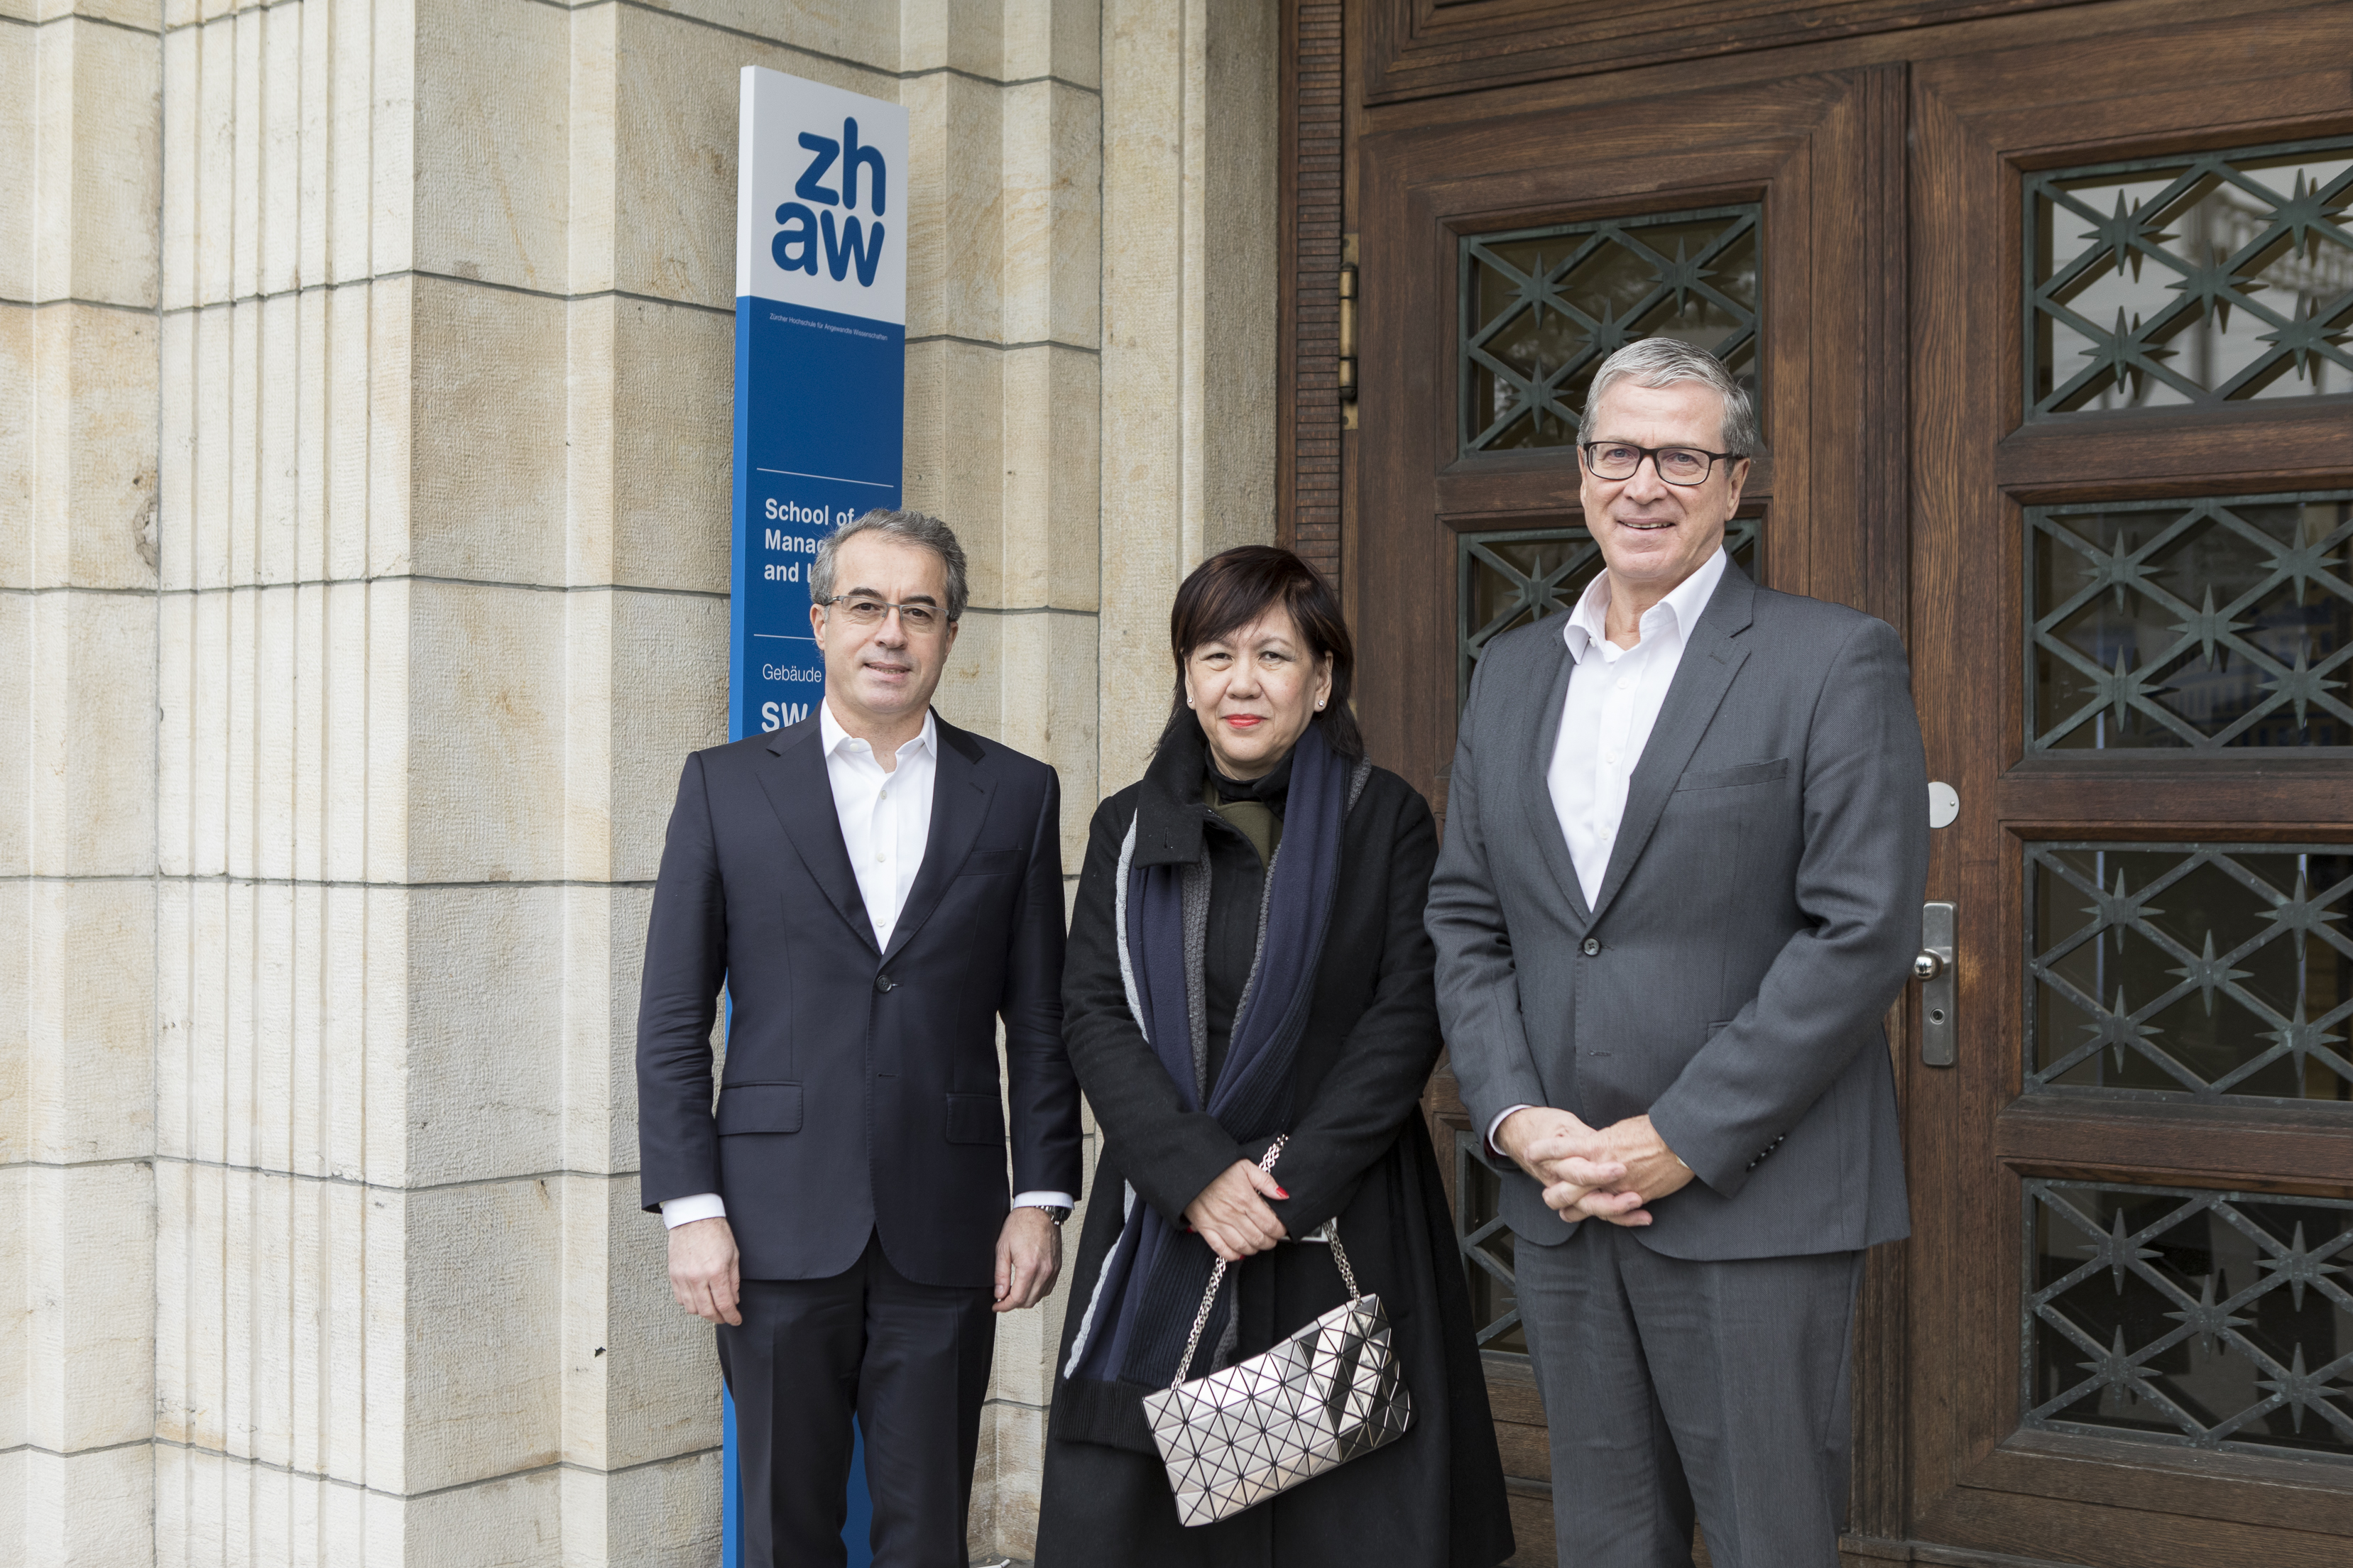 Dr. Carlo Pugnetti, Karine Kam, Daniel Greber (left to right)